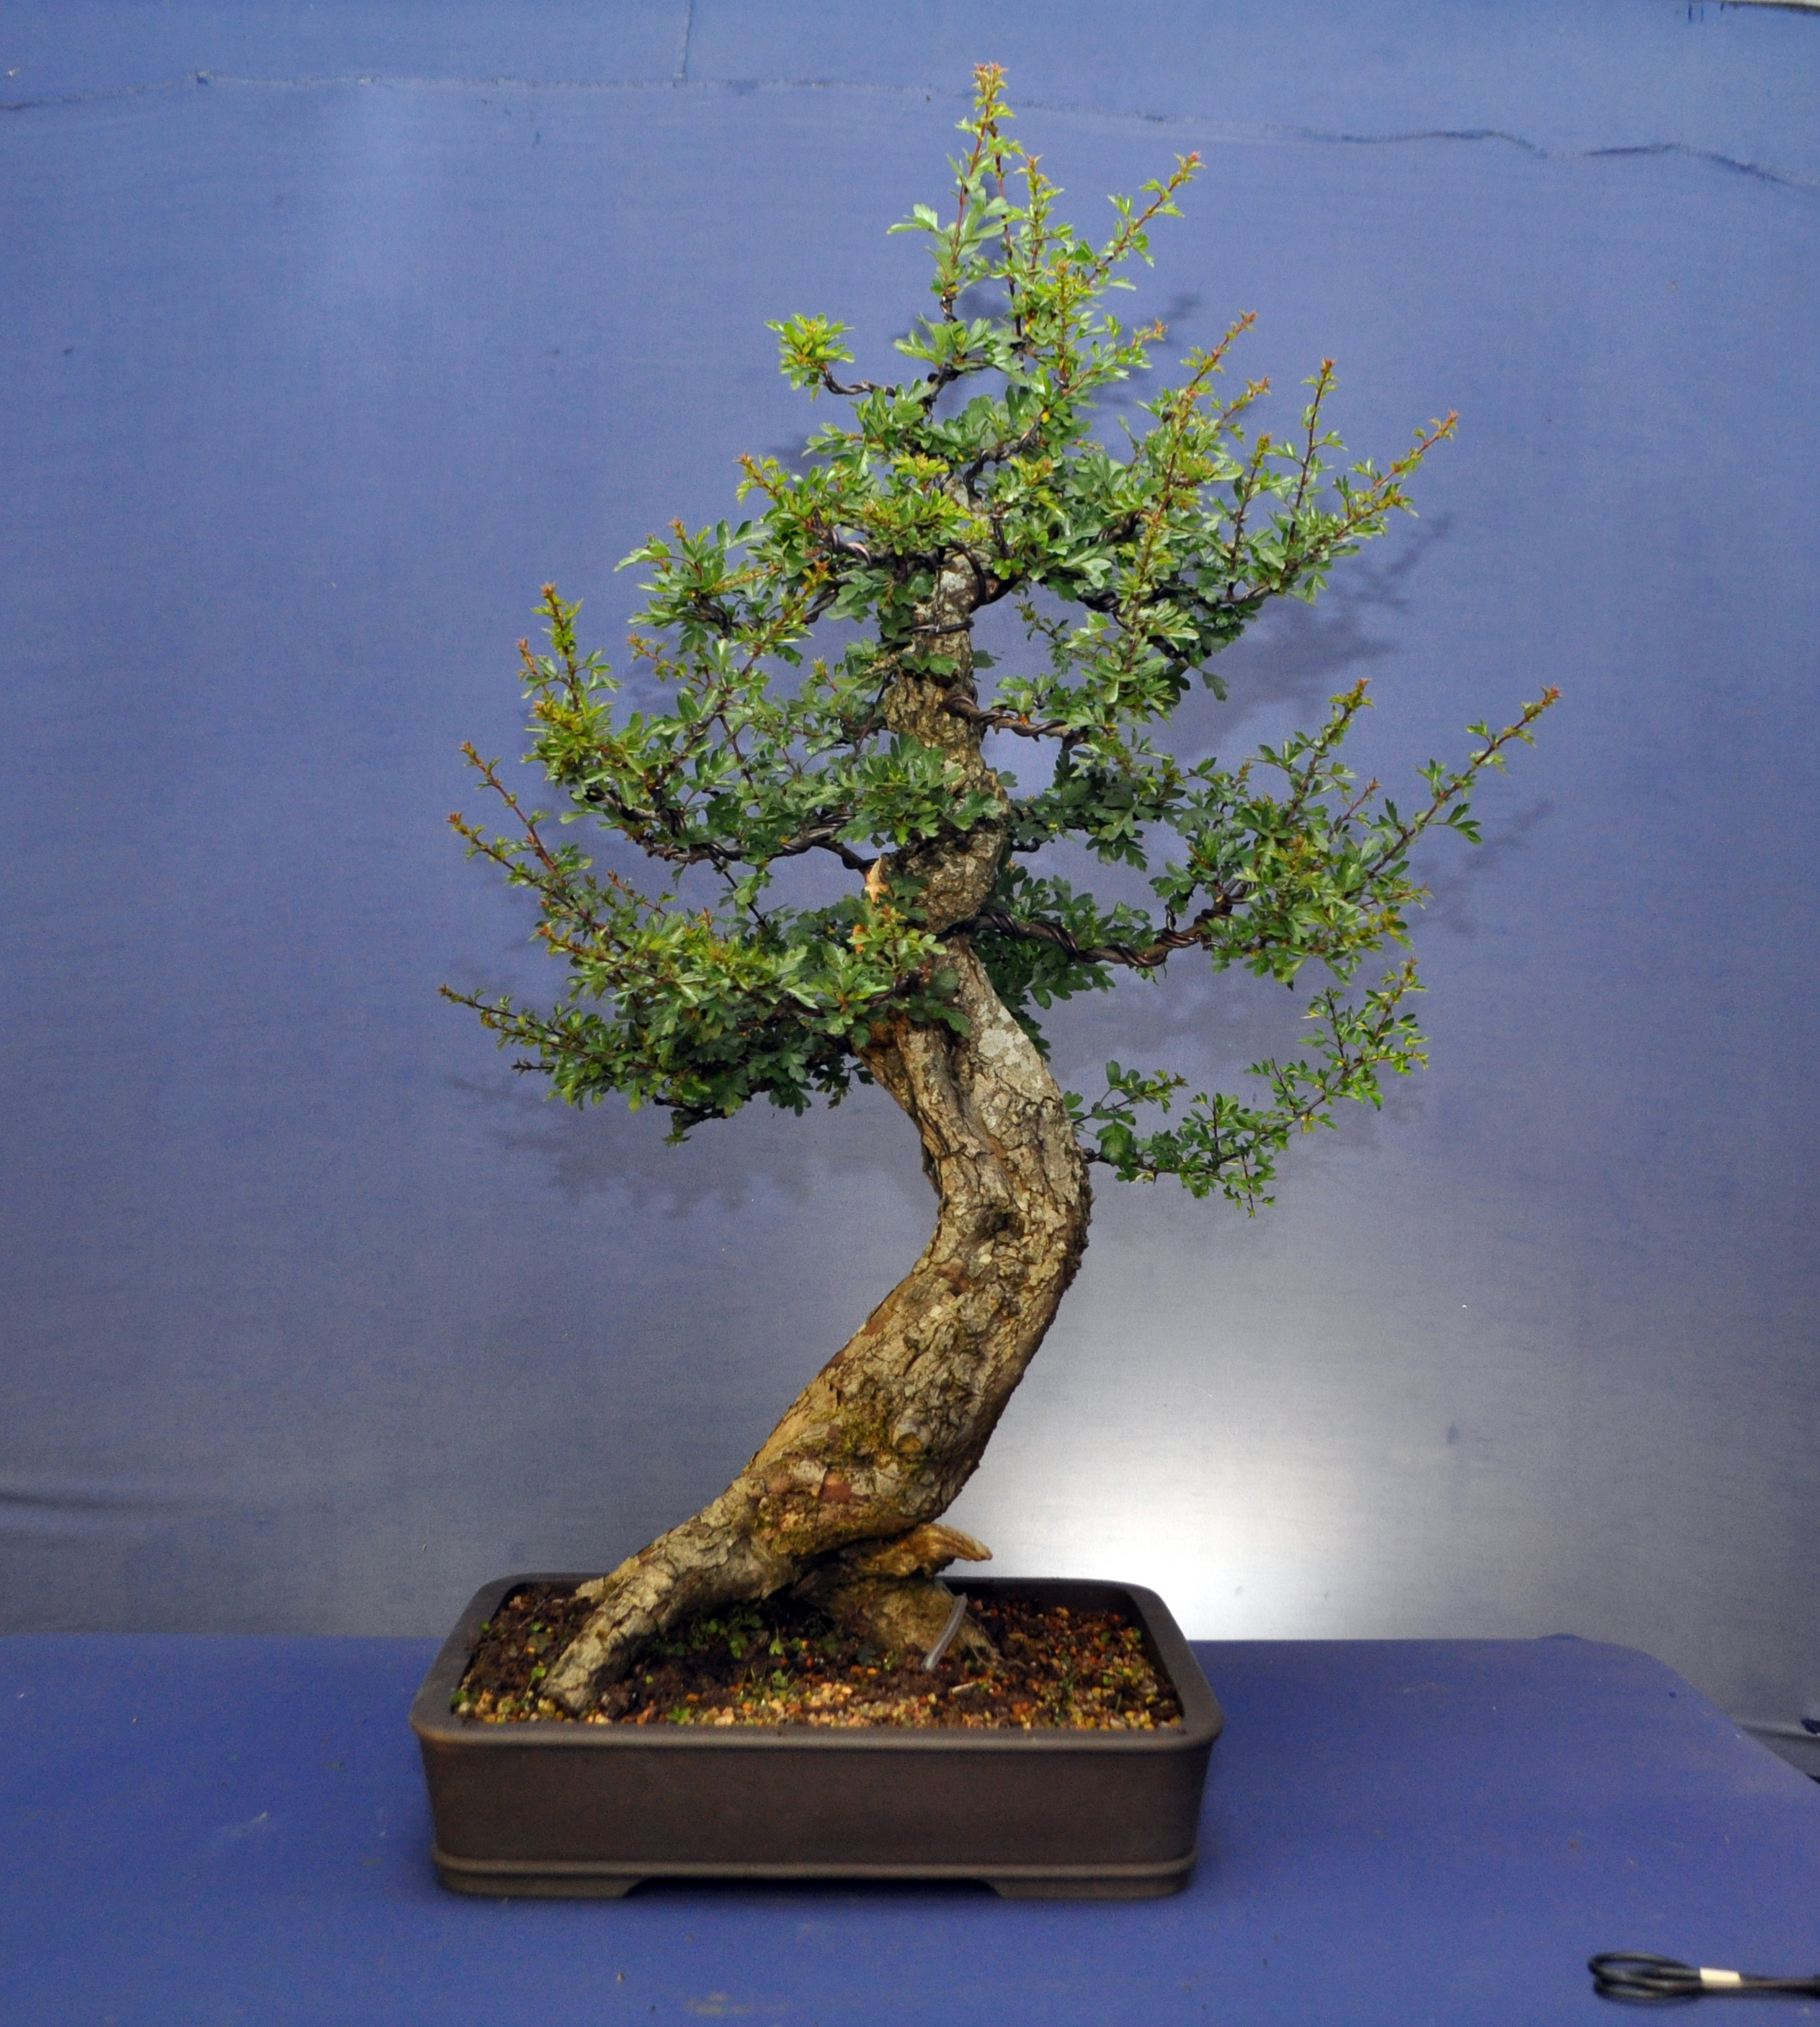 Hawthorn Extension Trim Bonsai Eejit Wiring Branches Wire Will Need Checked Weekly Or Ill Run The Risk Of Scarring Be Able To Rewire New Growth In Autumn And Continue Do This For Next 5 10